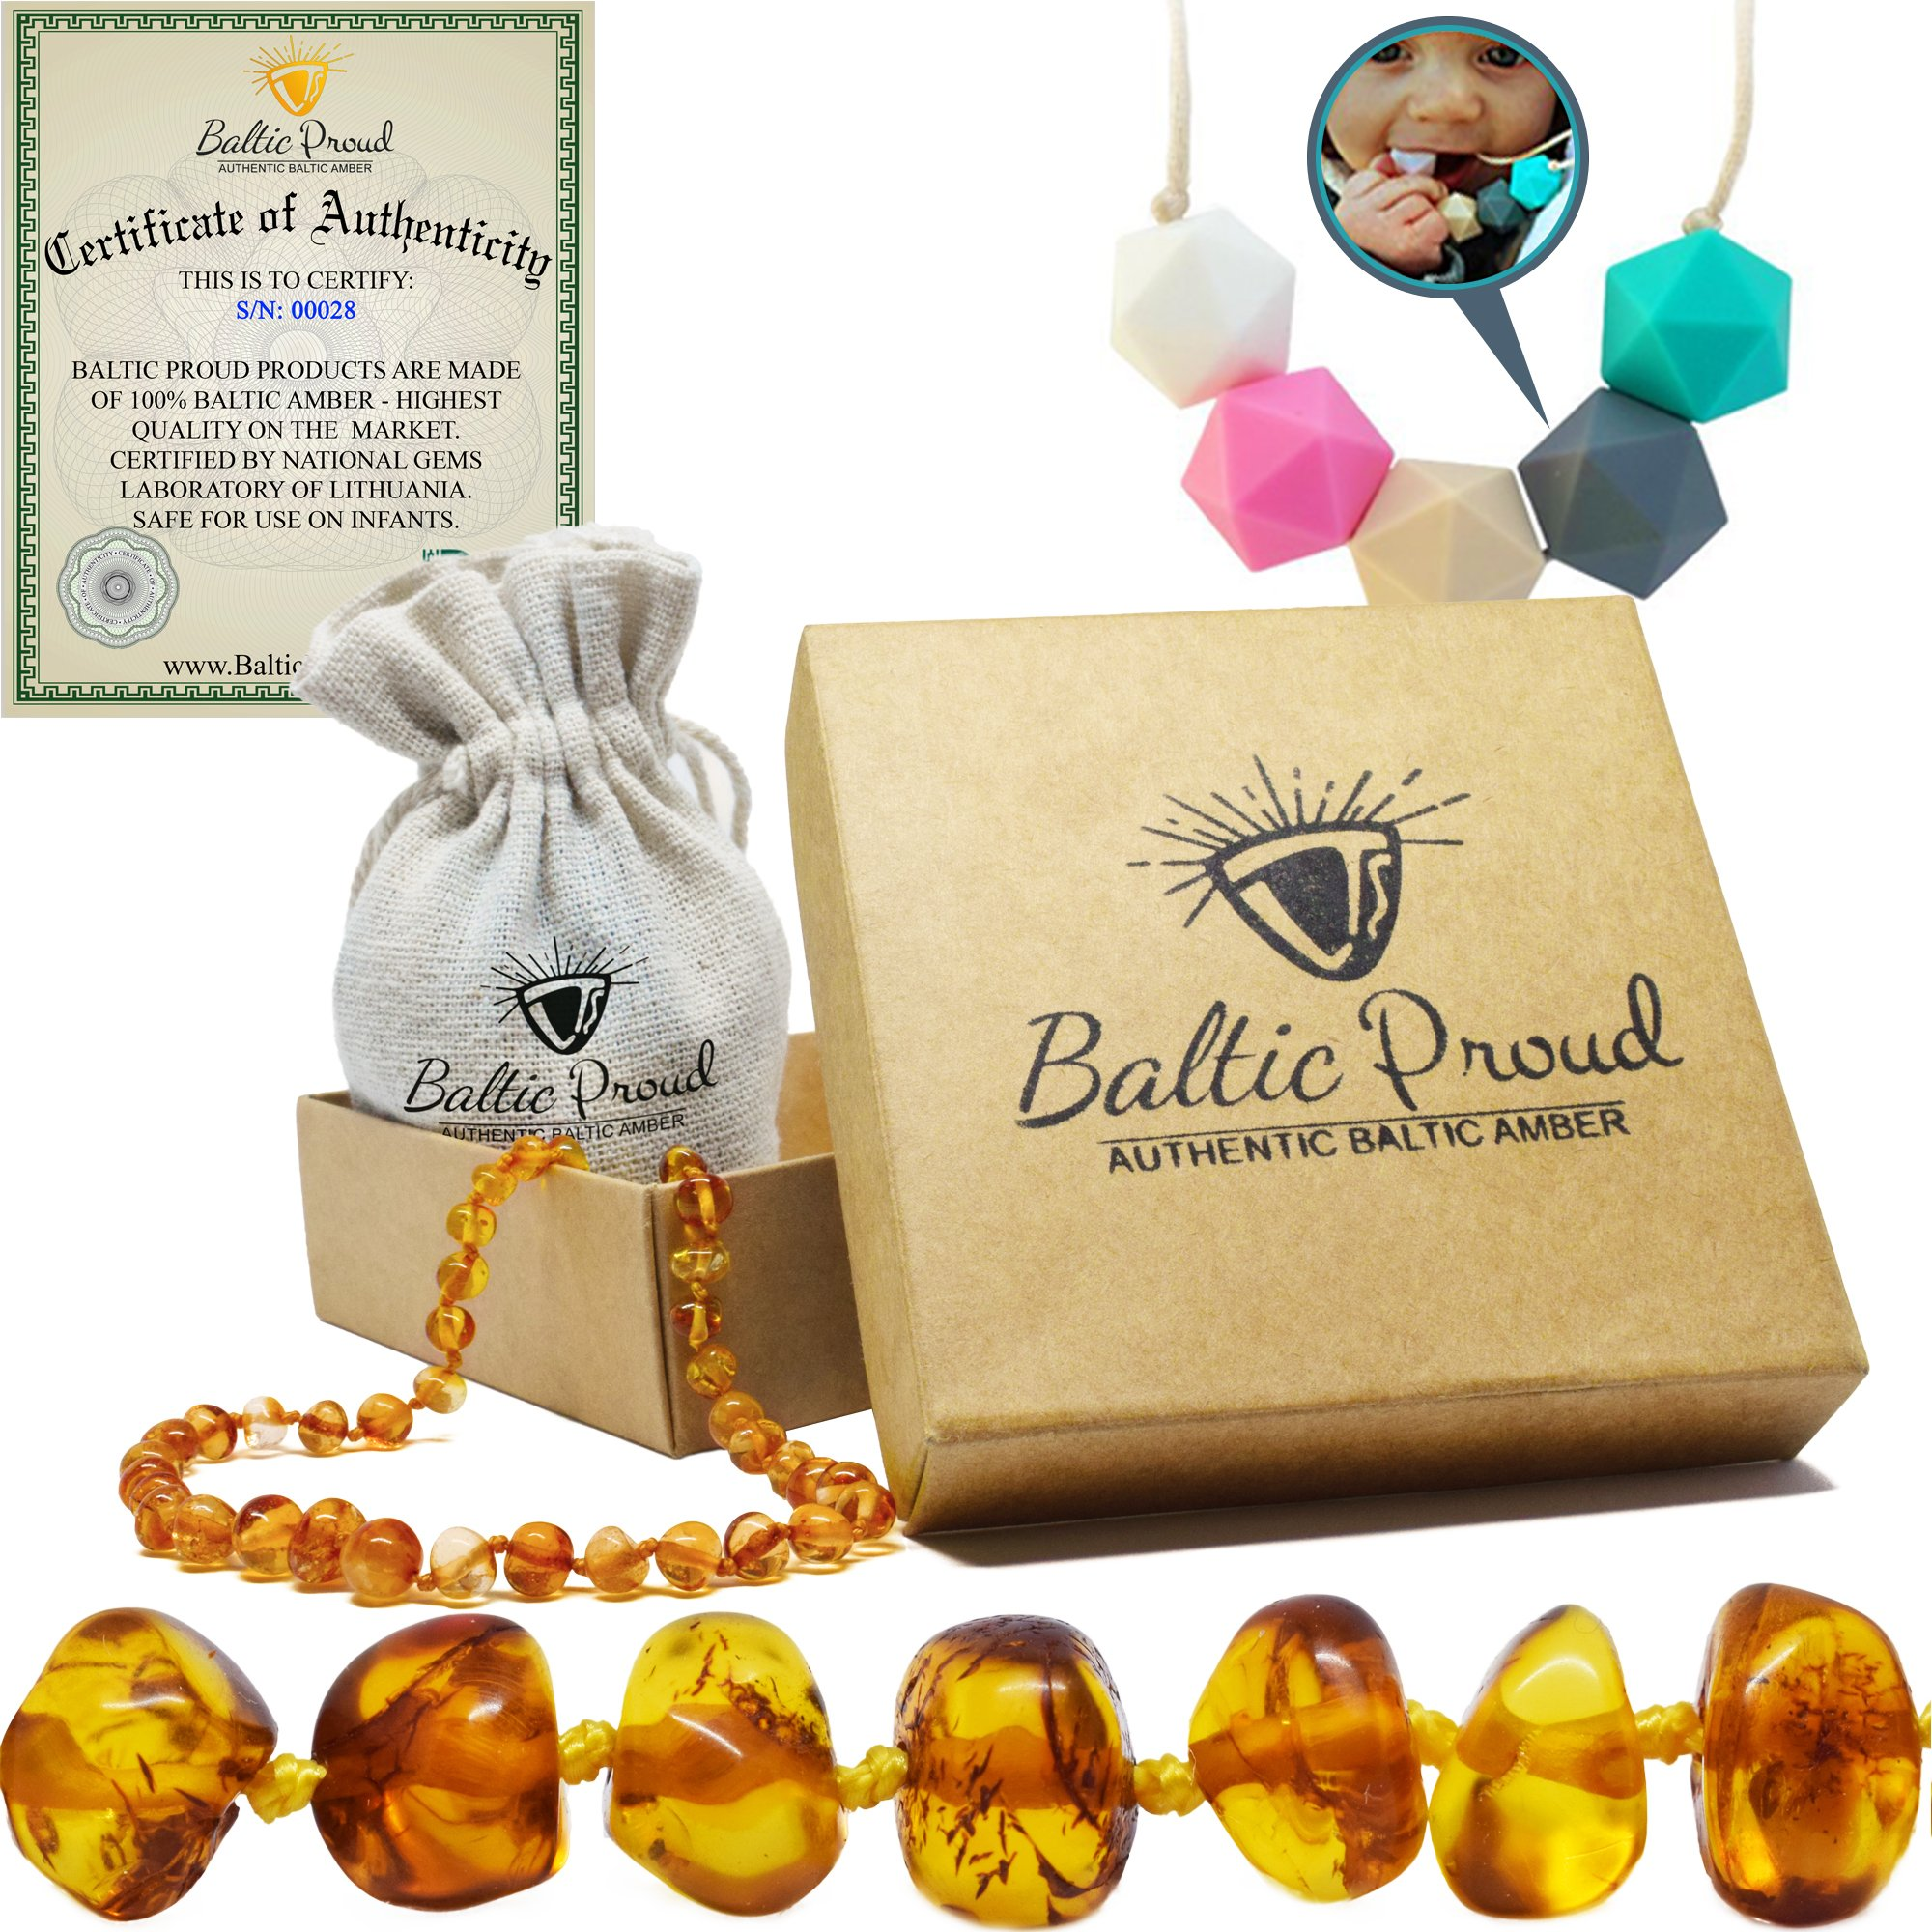 Amber Teething Necklace for Babies Gift Set (Unisex) + Silicone Teething Necklace - Anti Inflammatory, Natural Drooling and Teething Pain Relief, Highest Quality, Authentic Baltic Jewelry (Honey)